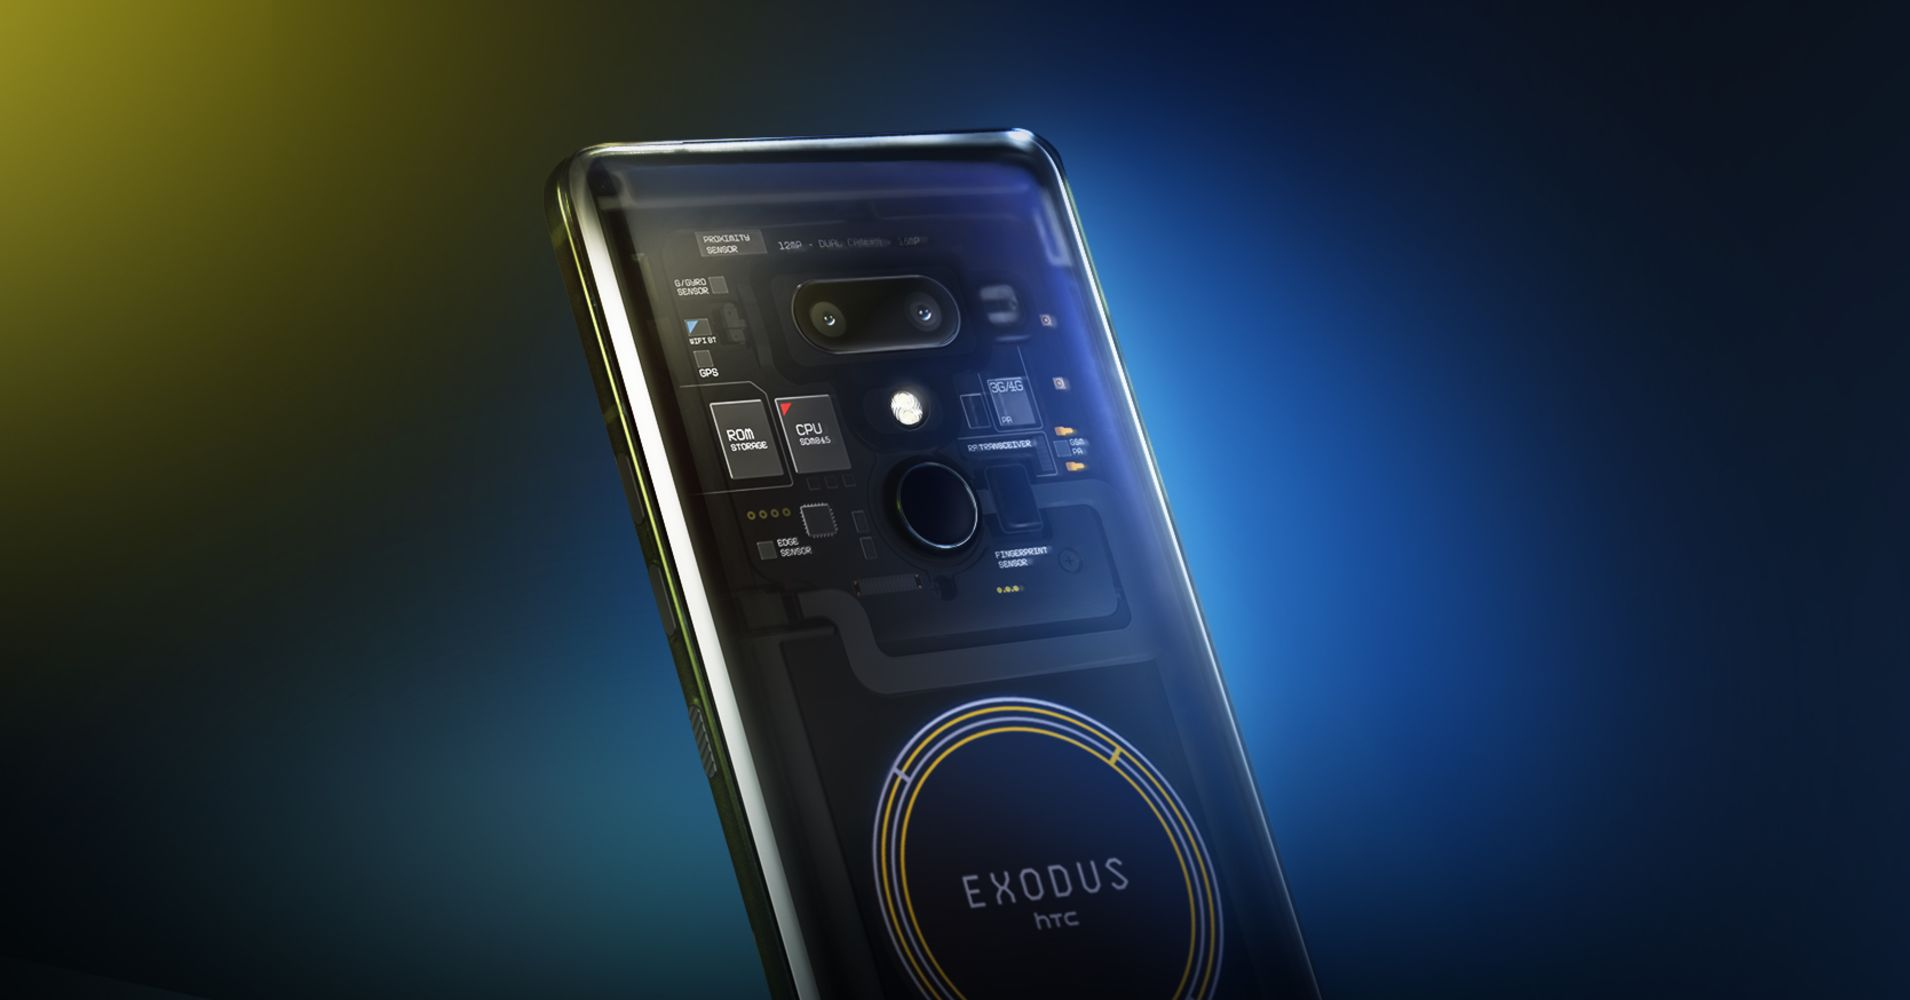 HTC launches its blockchain-focused phone, but you can only buy it in cryptocurrency